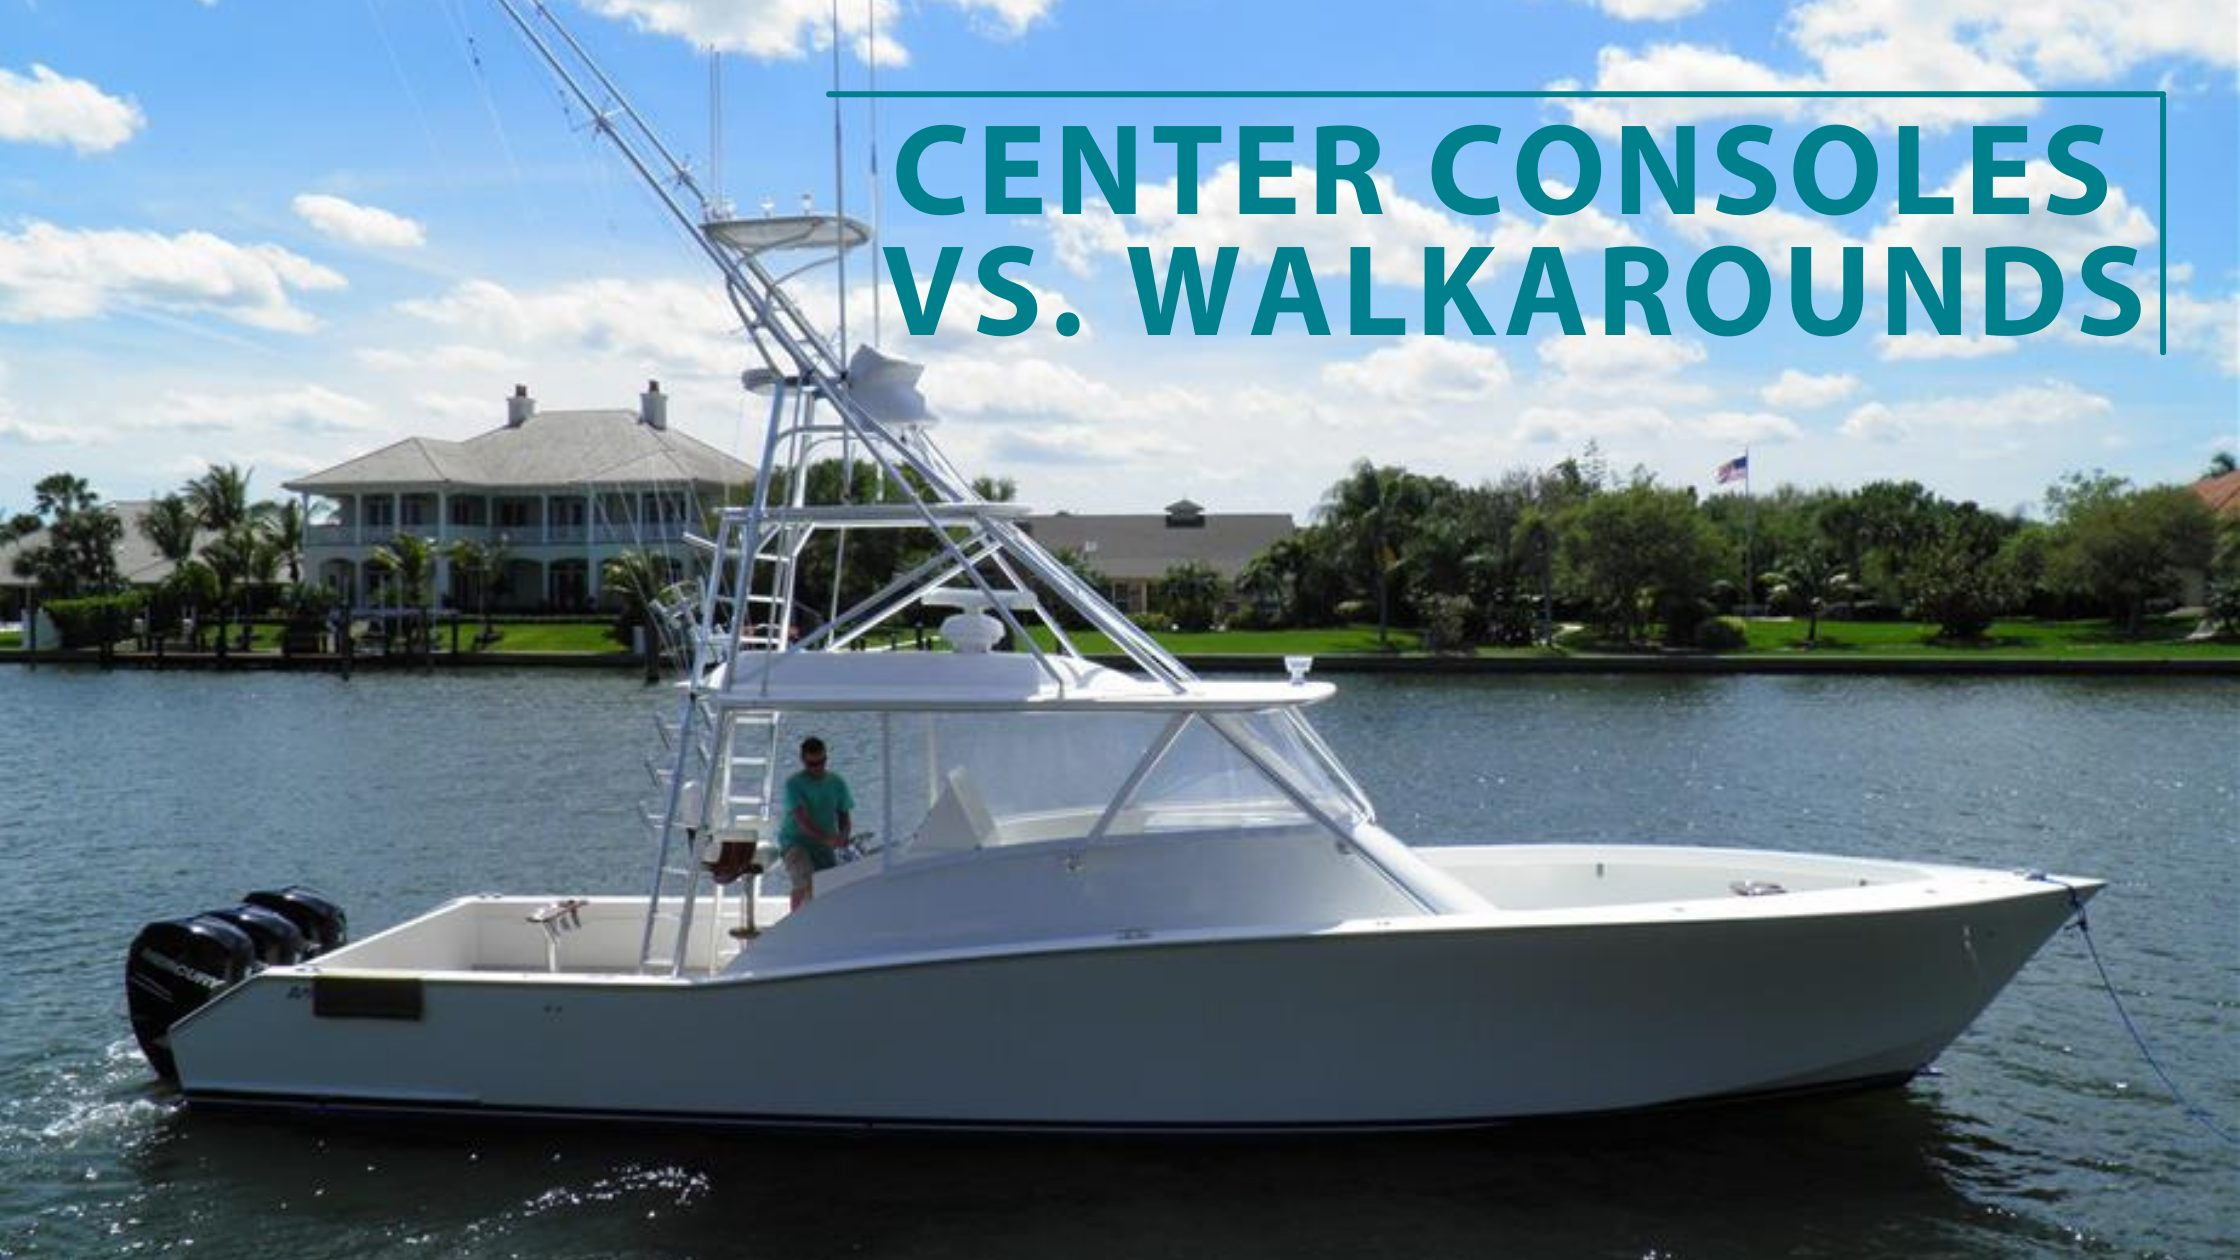 Luxury Fishing Outboards: Center Consoles vs. Walkarounds